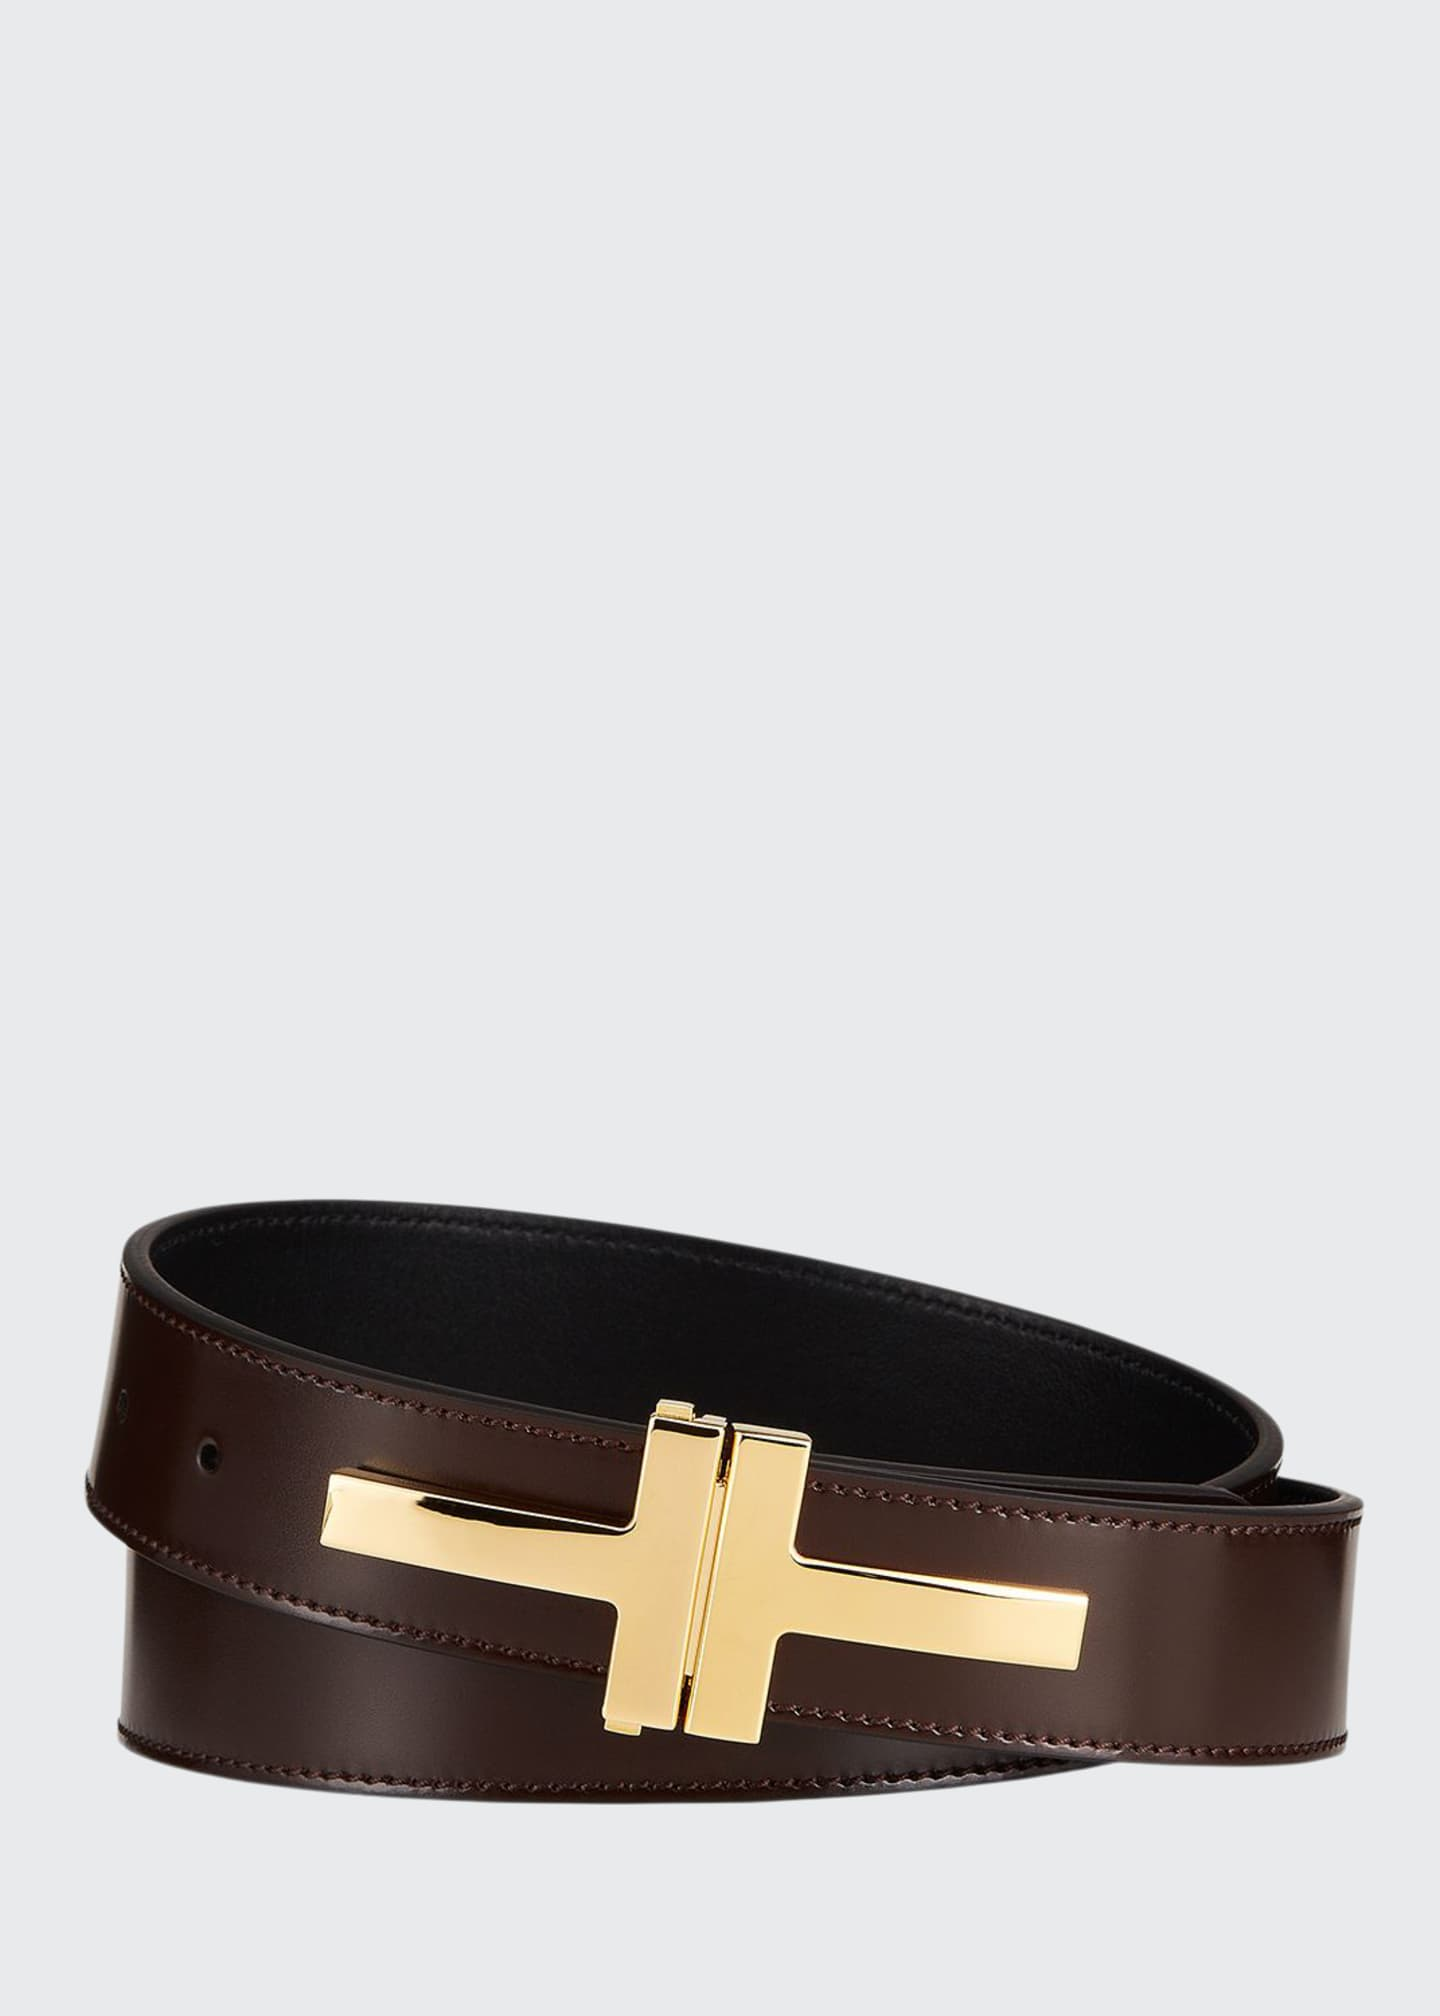 Image 1 of 1: Men's Double T Buckle Leather Belt